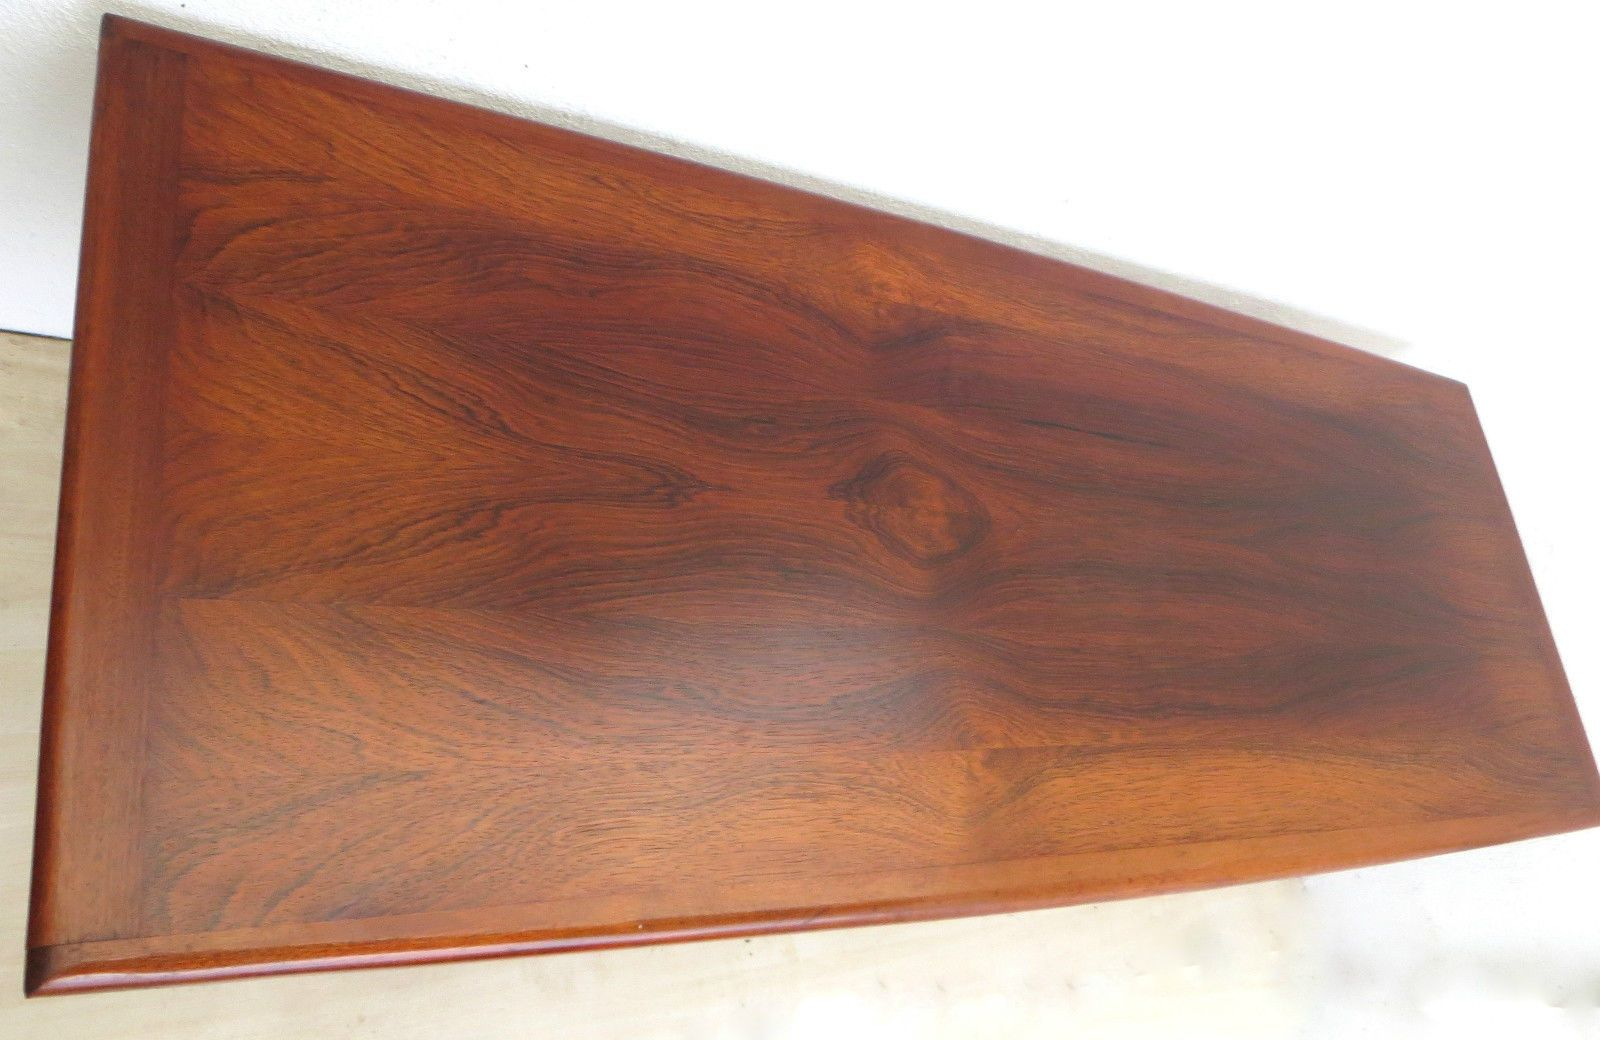 Marvelous Danish Rosewood Coffee Table, 1960s